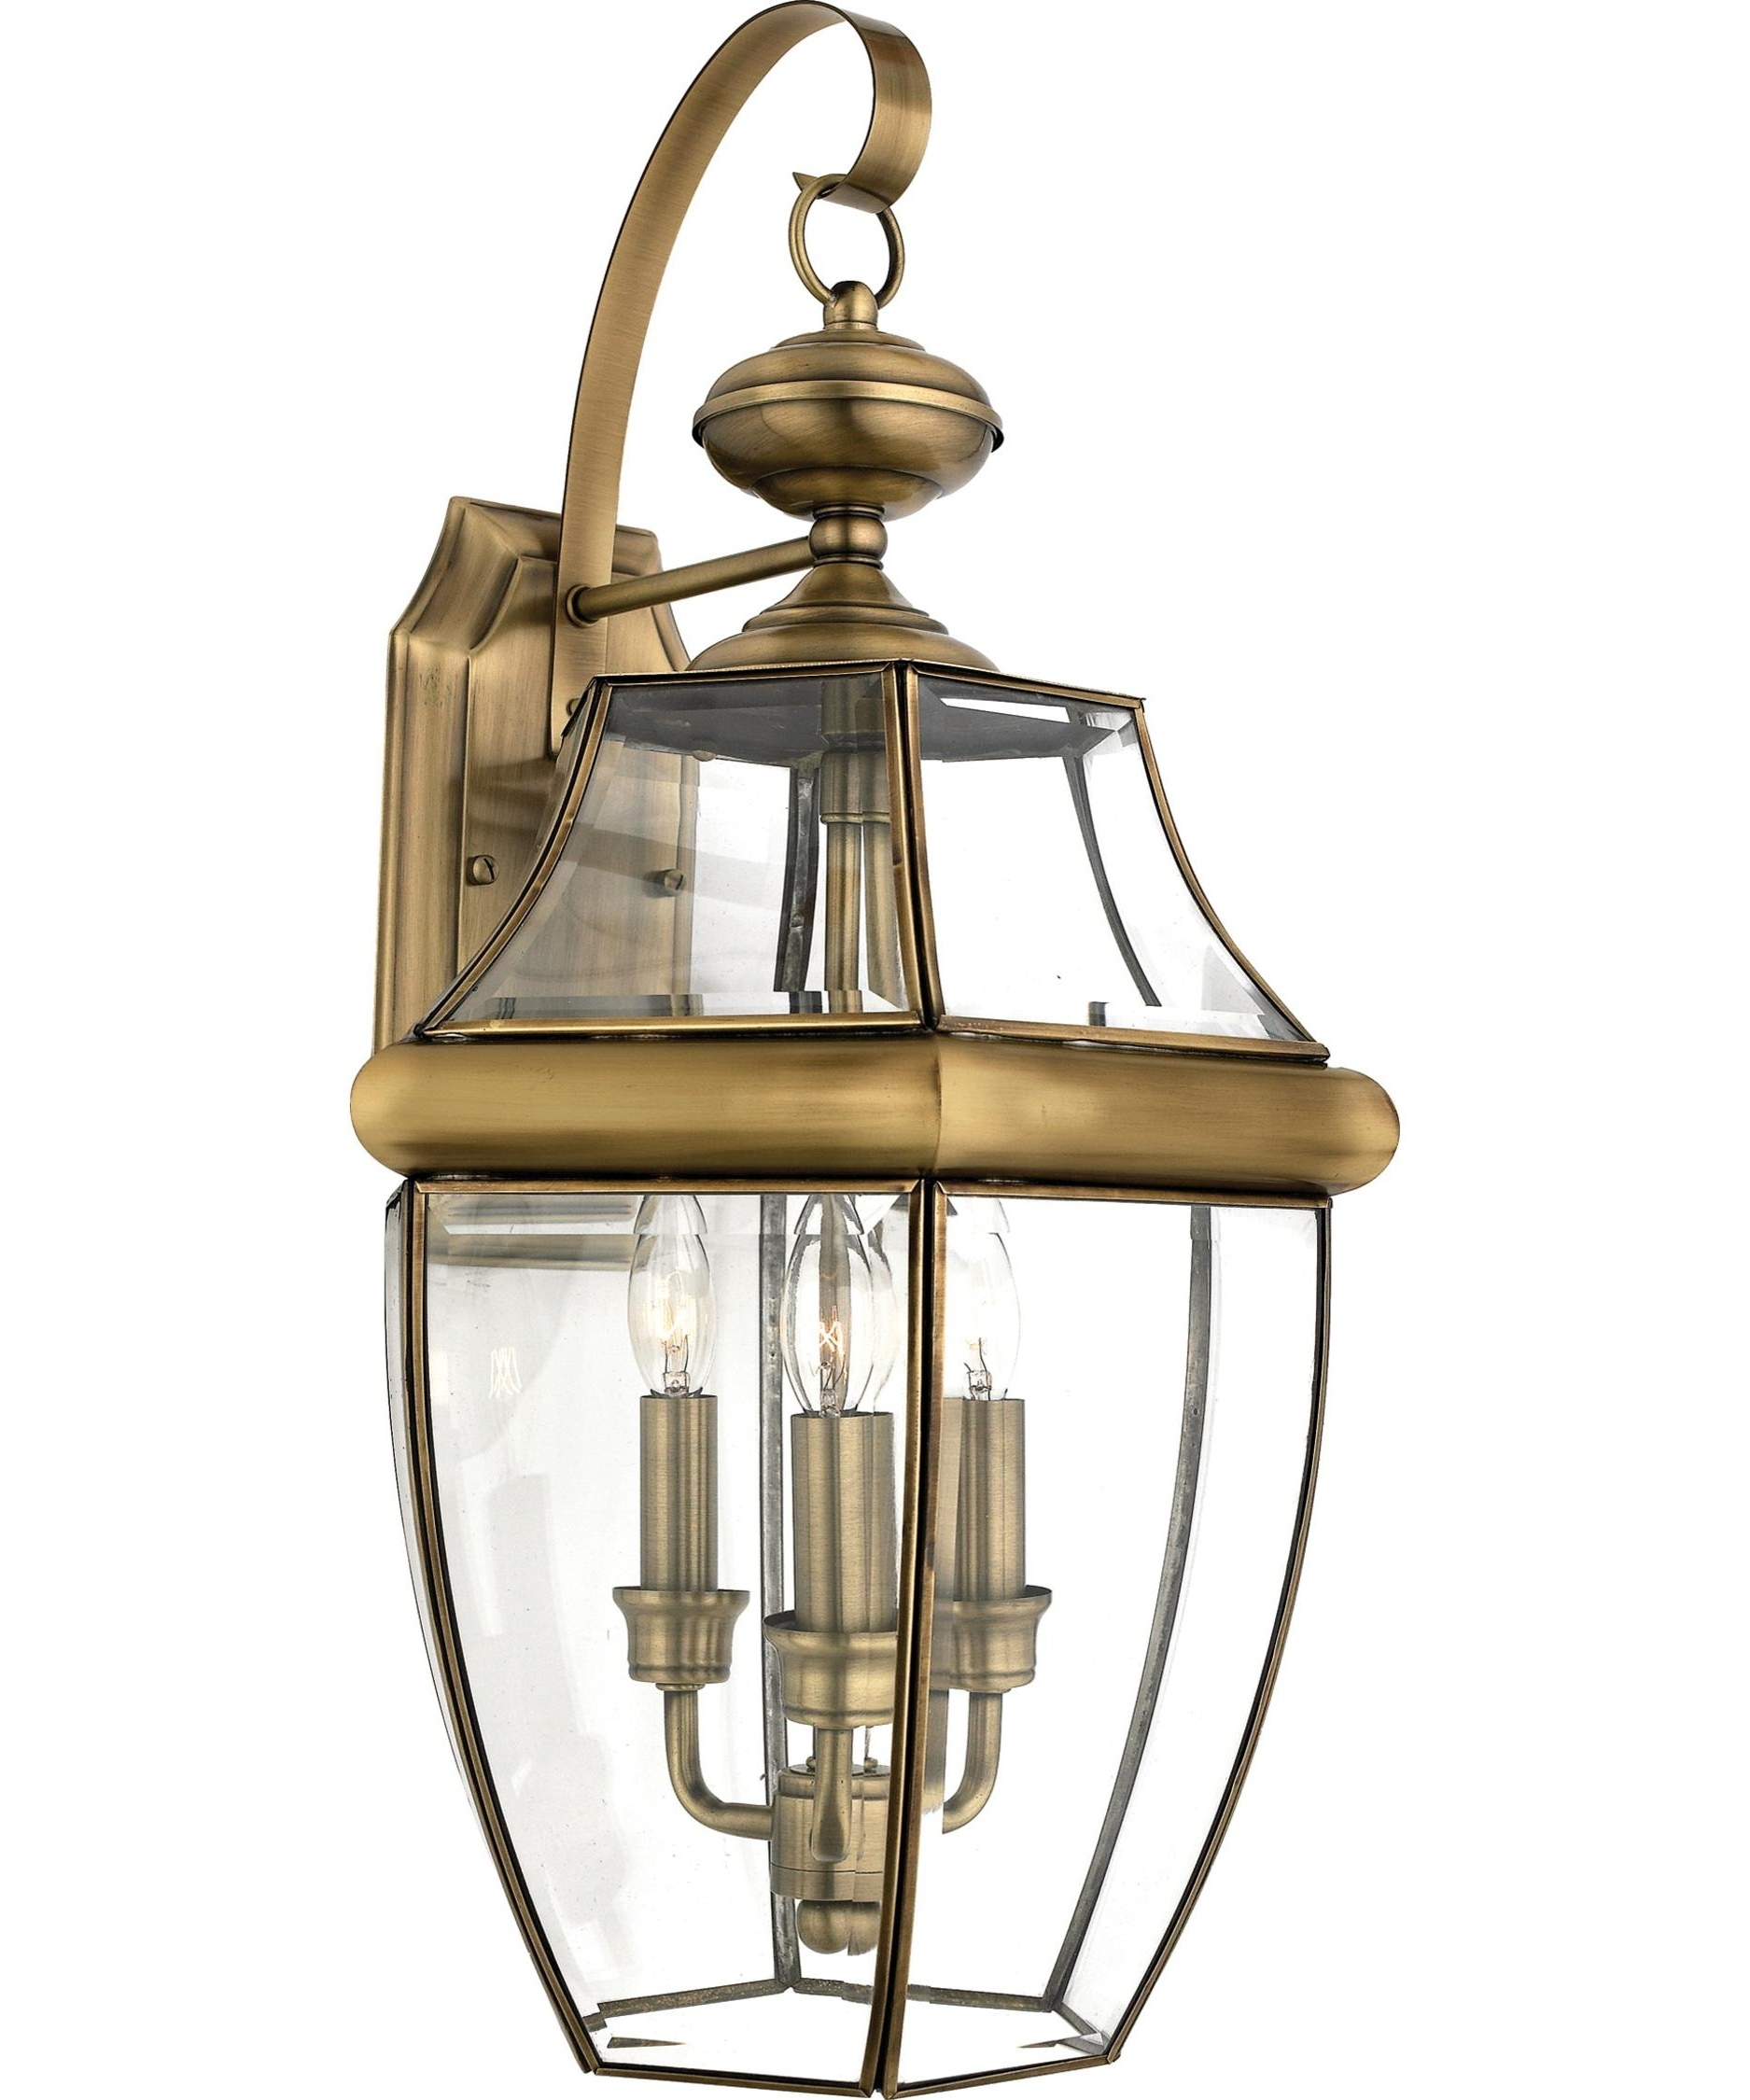 Recent Quoizel Ny8318 Newbury 13 Inch Wide 3 Light Outdoor Wall Light For Antique Outdoor Wall Lighting (View 18 of 20)